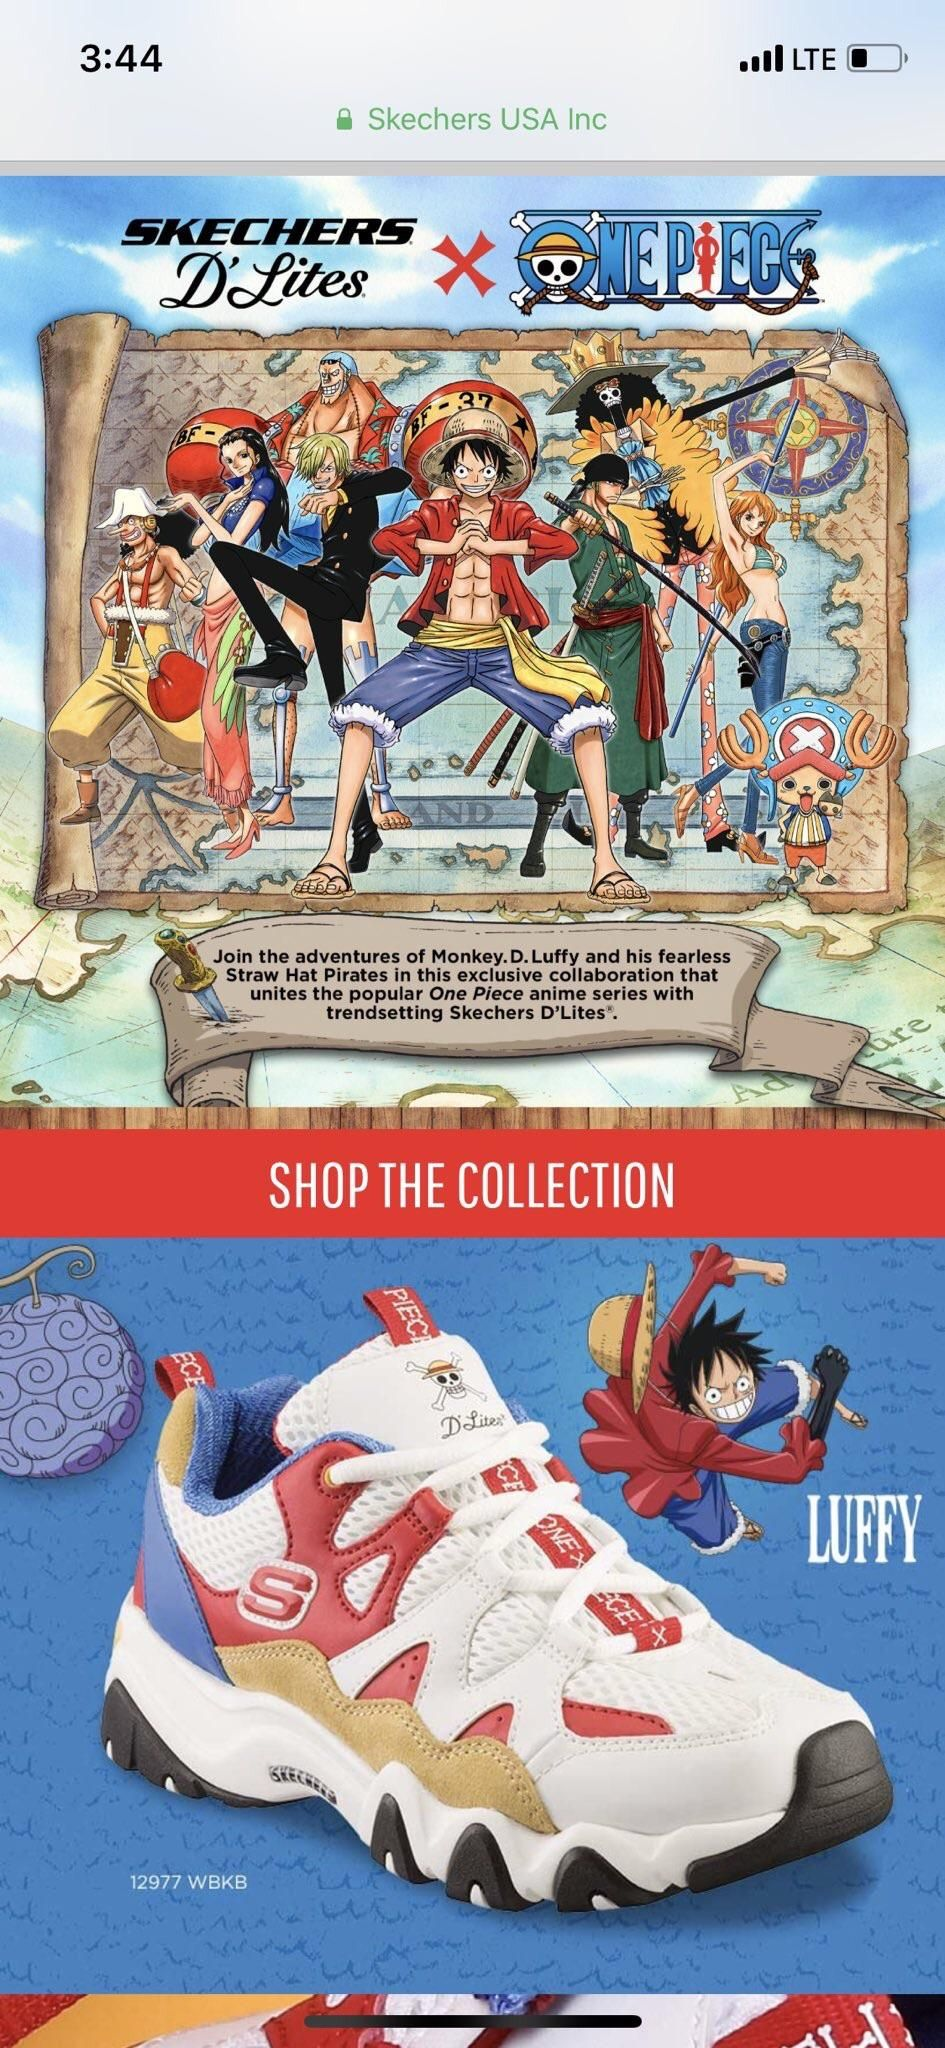 One Piece x Skechers Collab Skechers, One piece